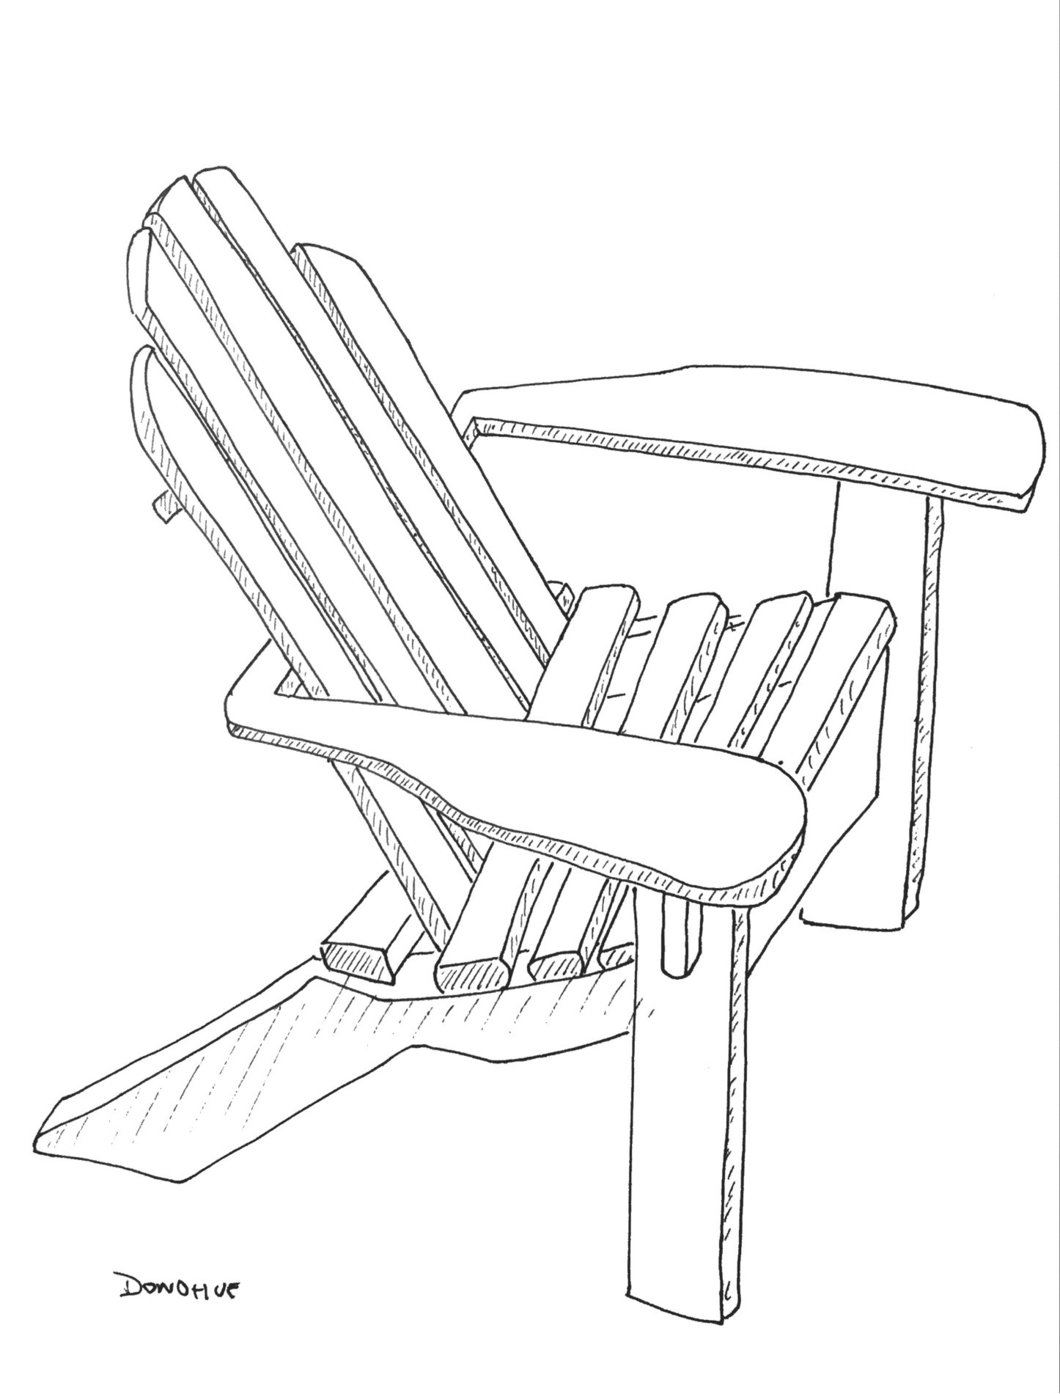 1060x1394 Fourth Of July, Adirondack Chair Drawing Donohue Number 1 Eat